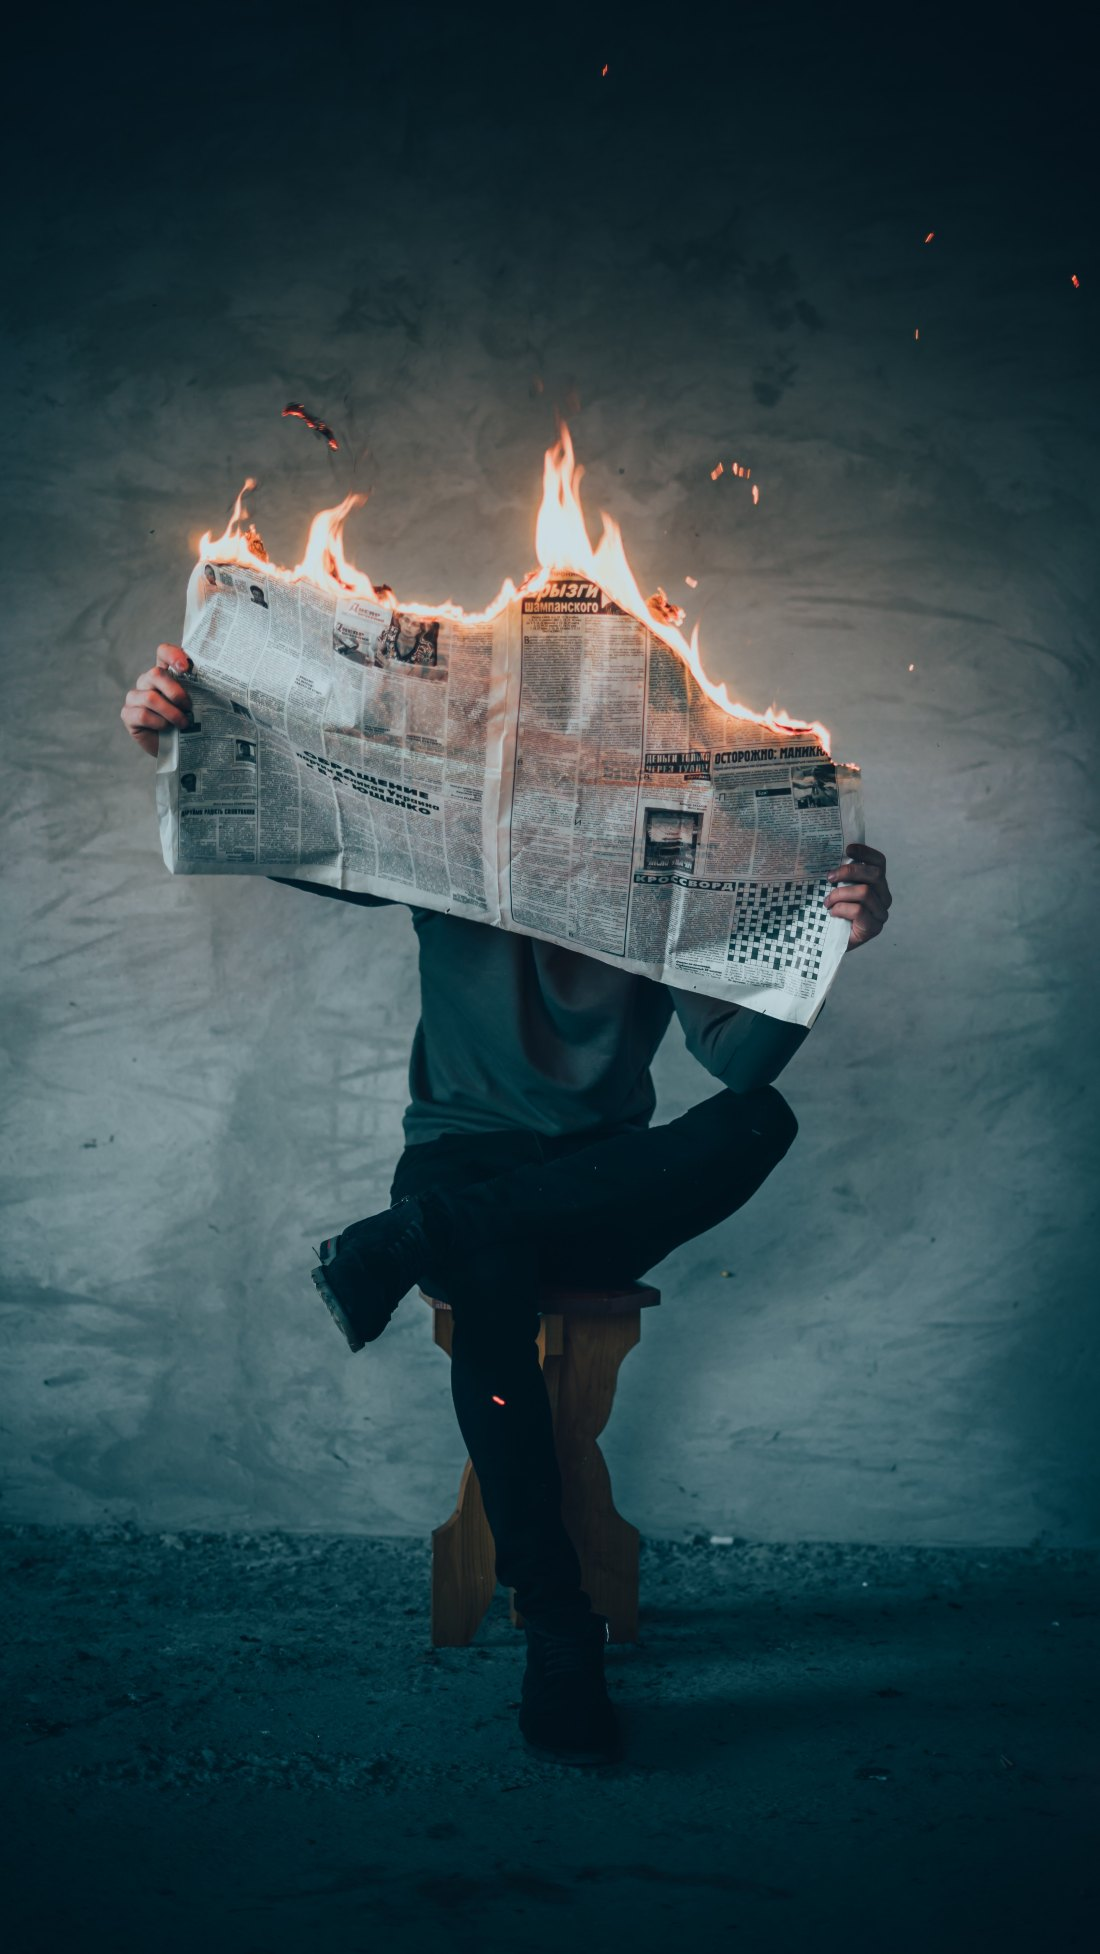 A man sits on a stool holding a burning newspaper